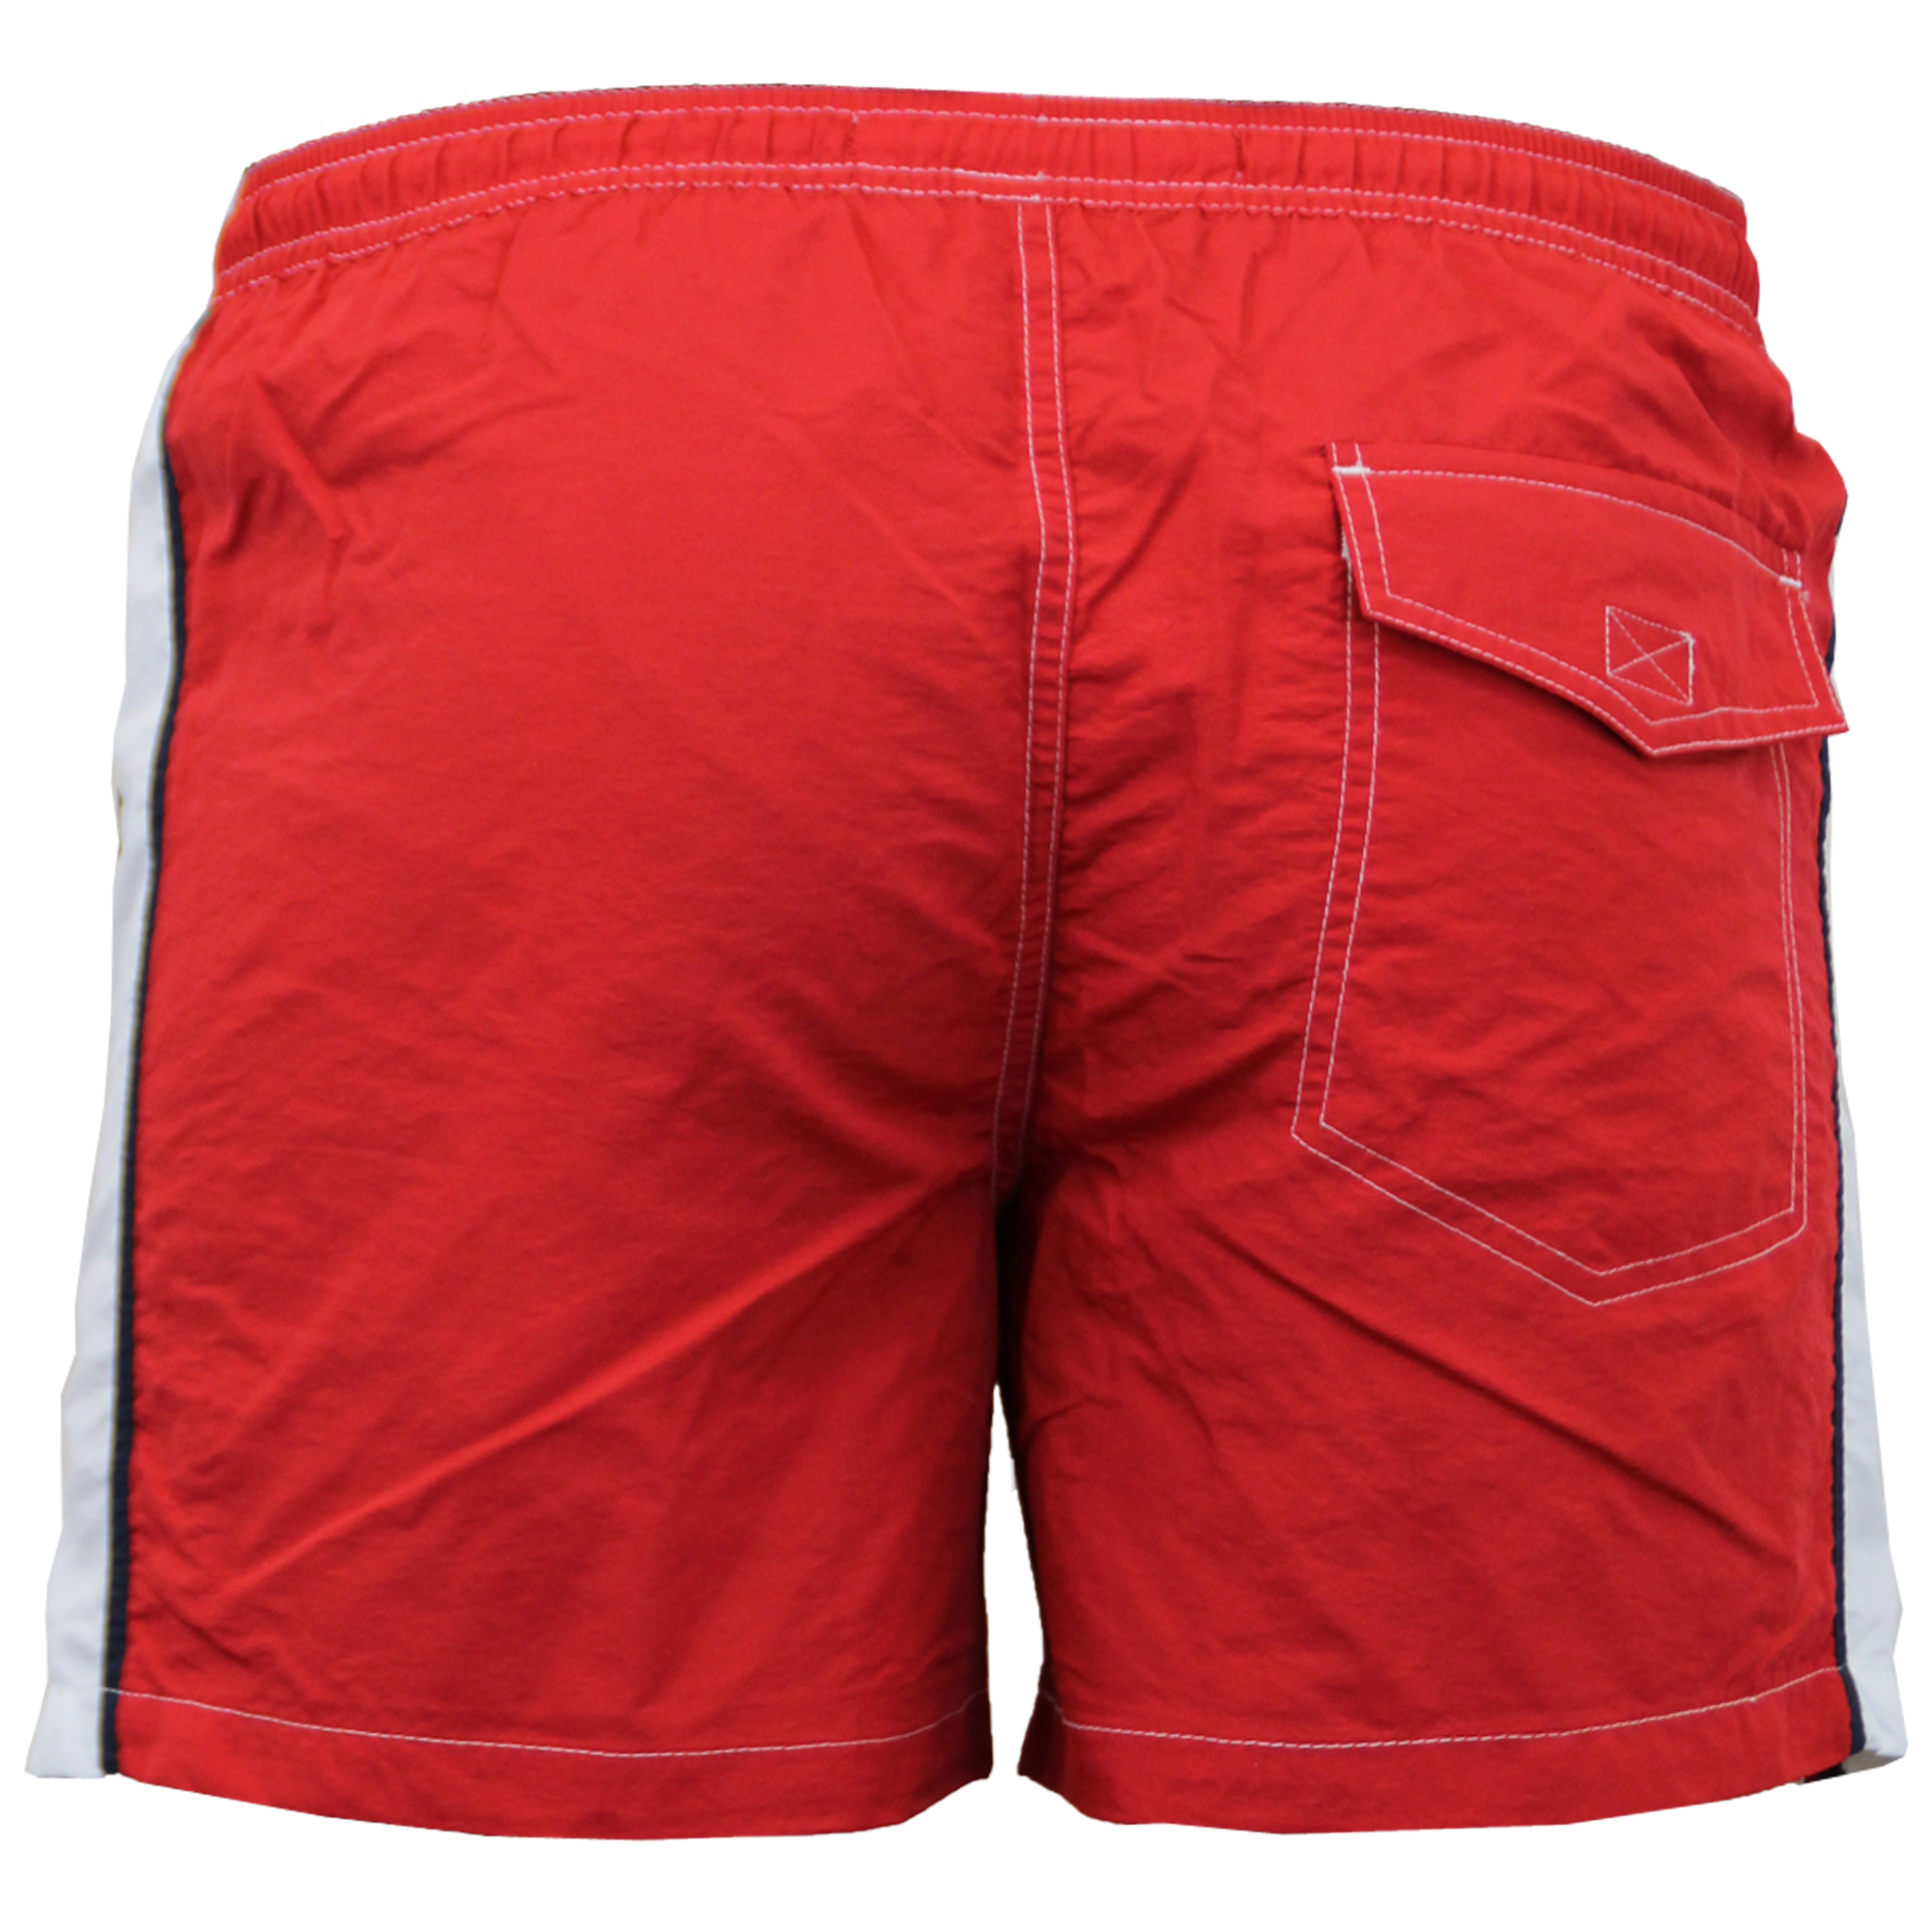 Mens-Swim-Board-Shorts-By-Brave-Soul-Mesh-Lined-New thumbnail 53